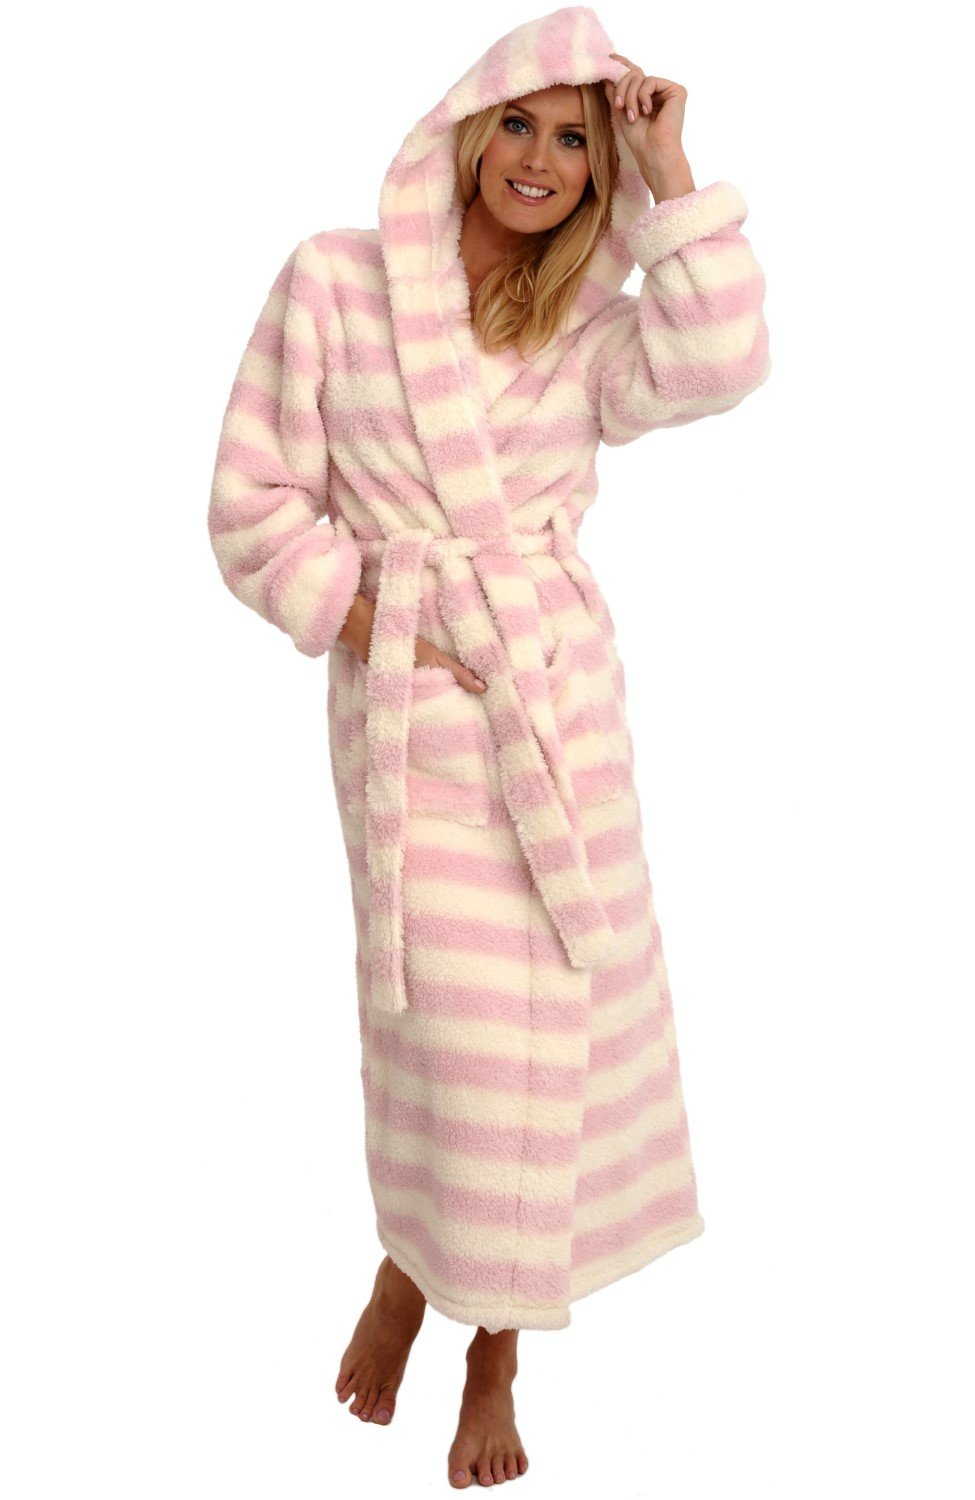 Alexander Del Rossa Womens Fleece Robe, Long Plush Hooded Bathrobe, Small Medium Cream and Pink Striped (A0304P10MD)